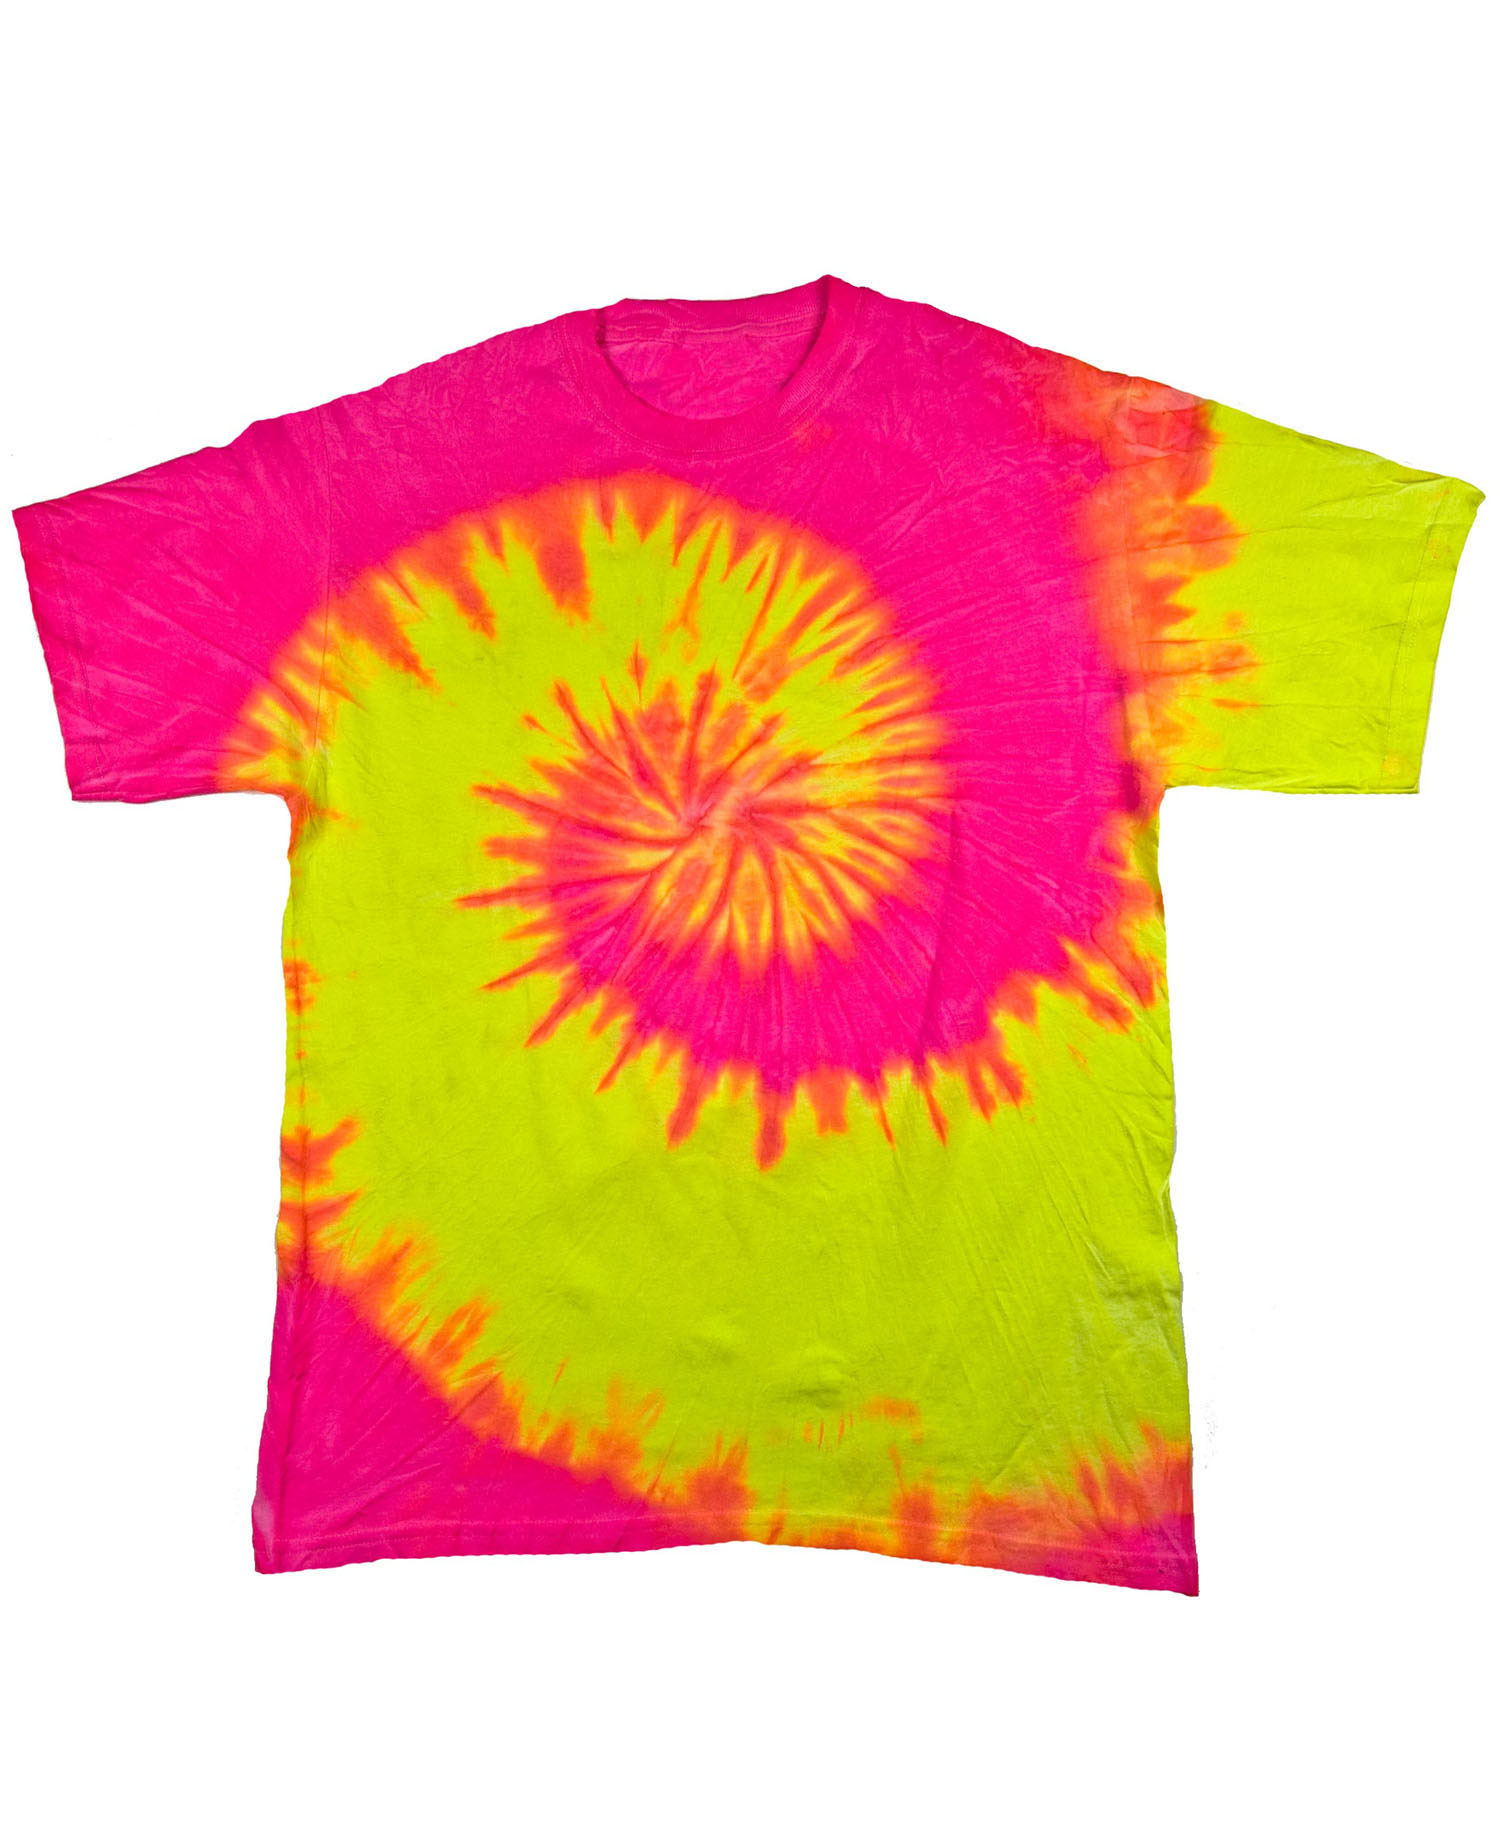 Colortone - T966P Tour Bus Youth Tie Dye Tee